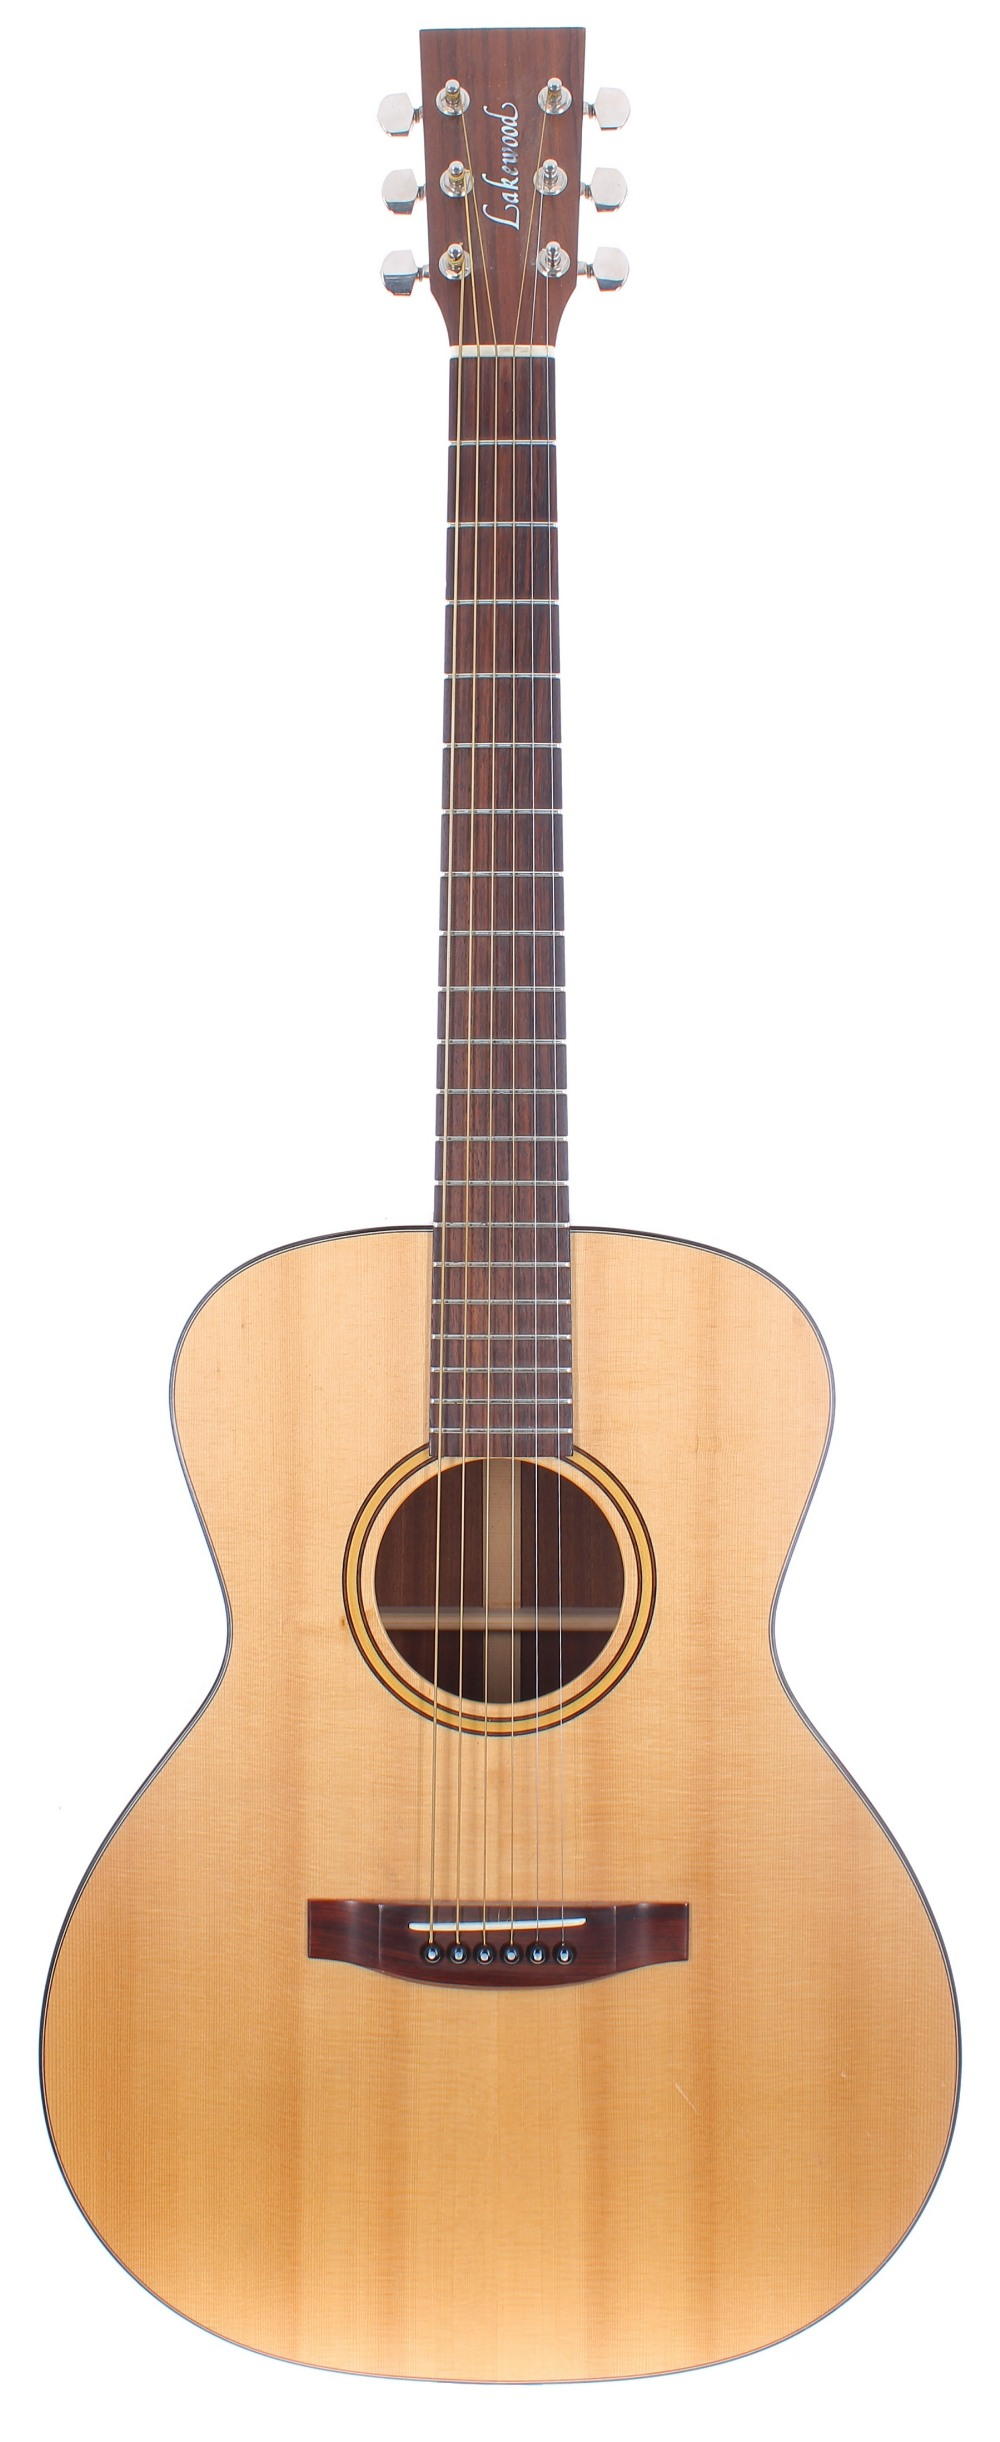 2000 Lakewood Model M-1 acoustic guitar; Back and sides: mahogany; Top: spruce, minor marks;